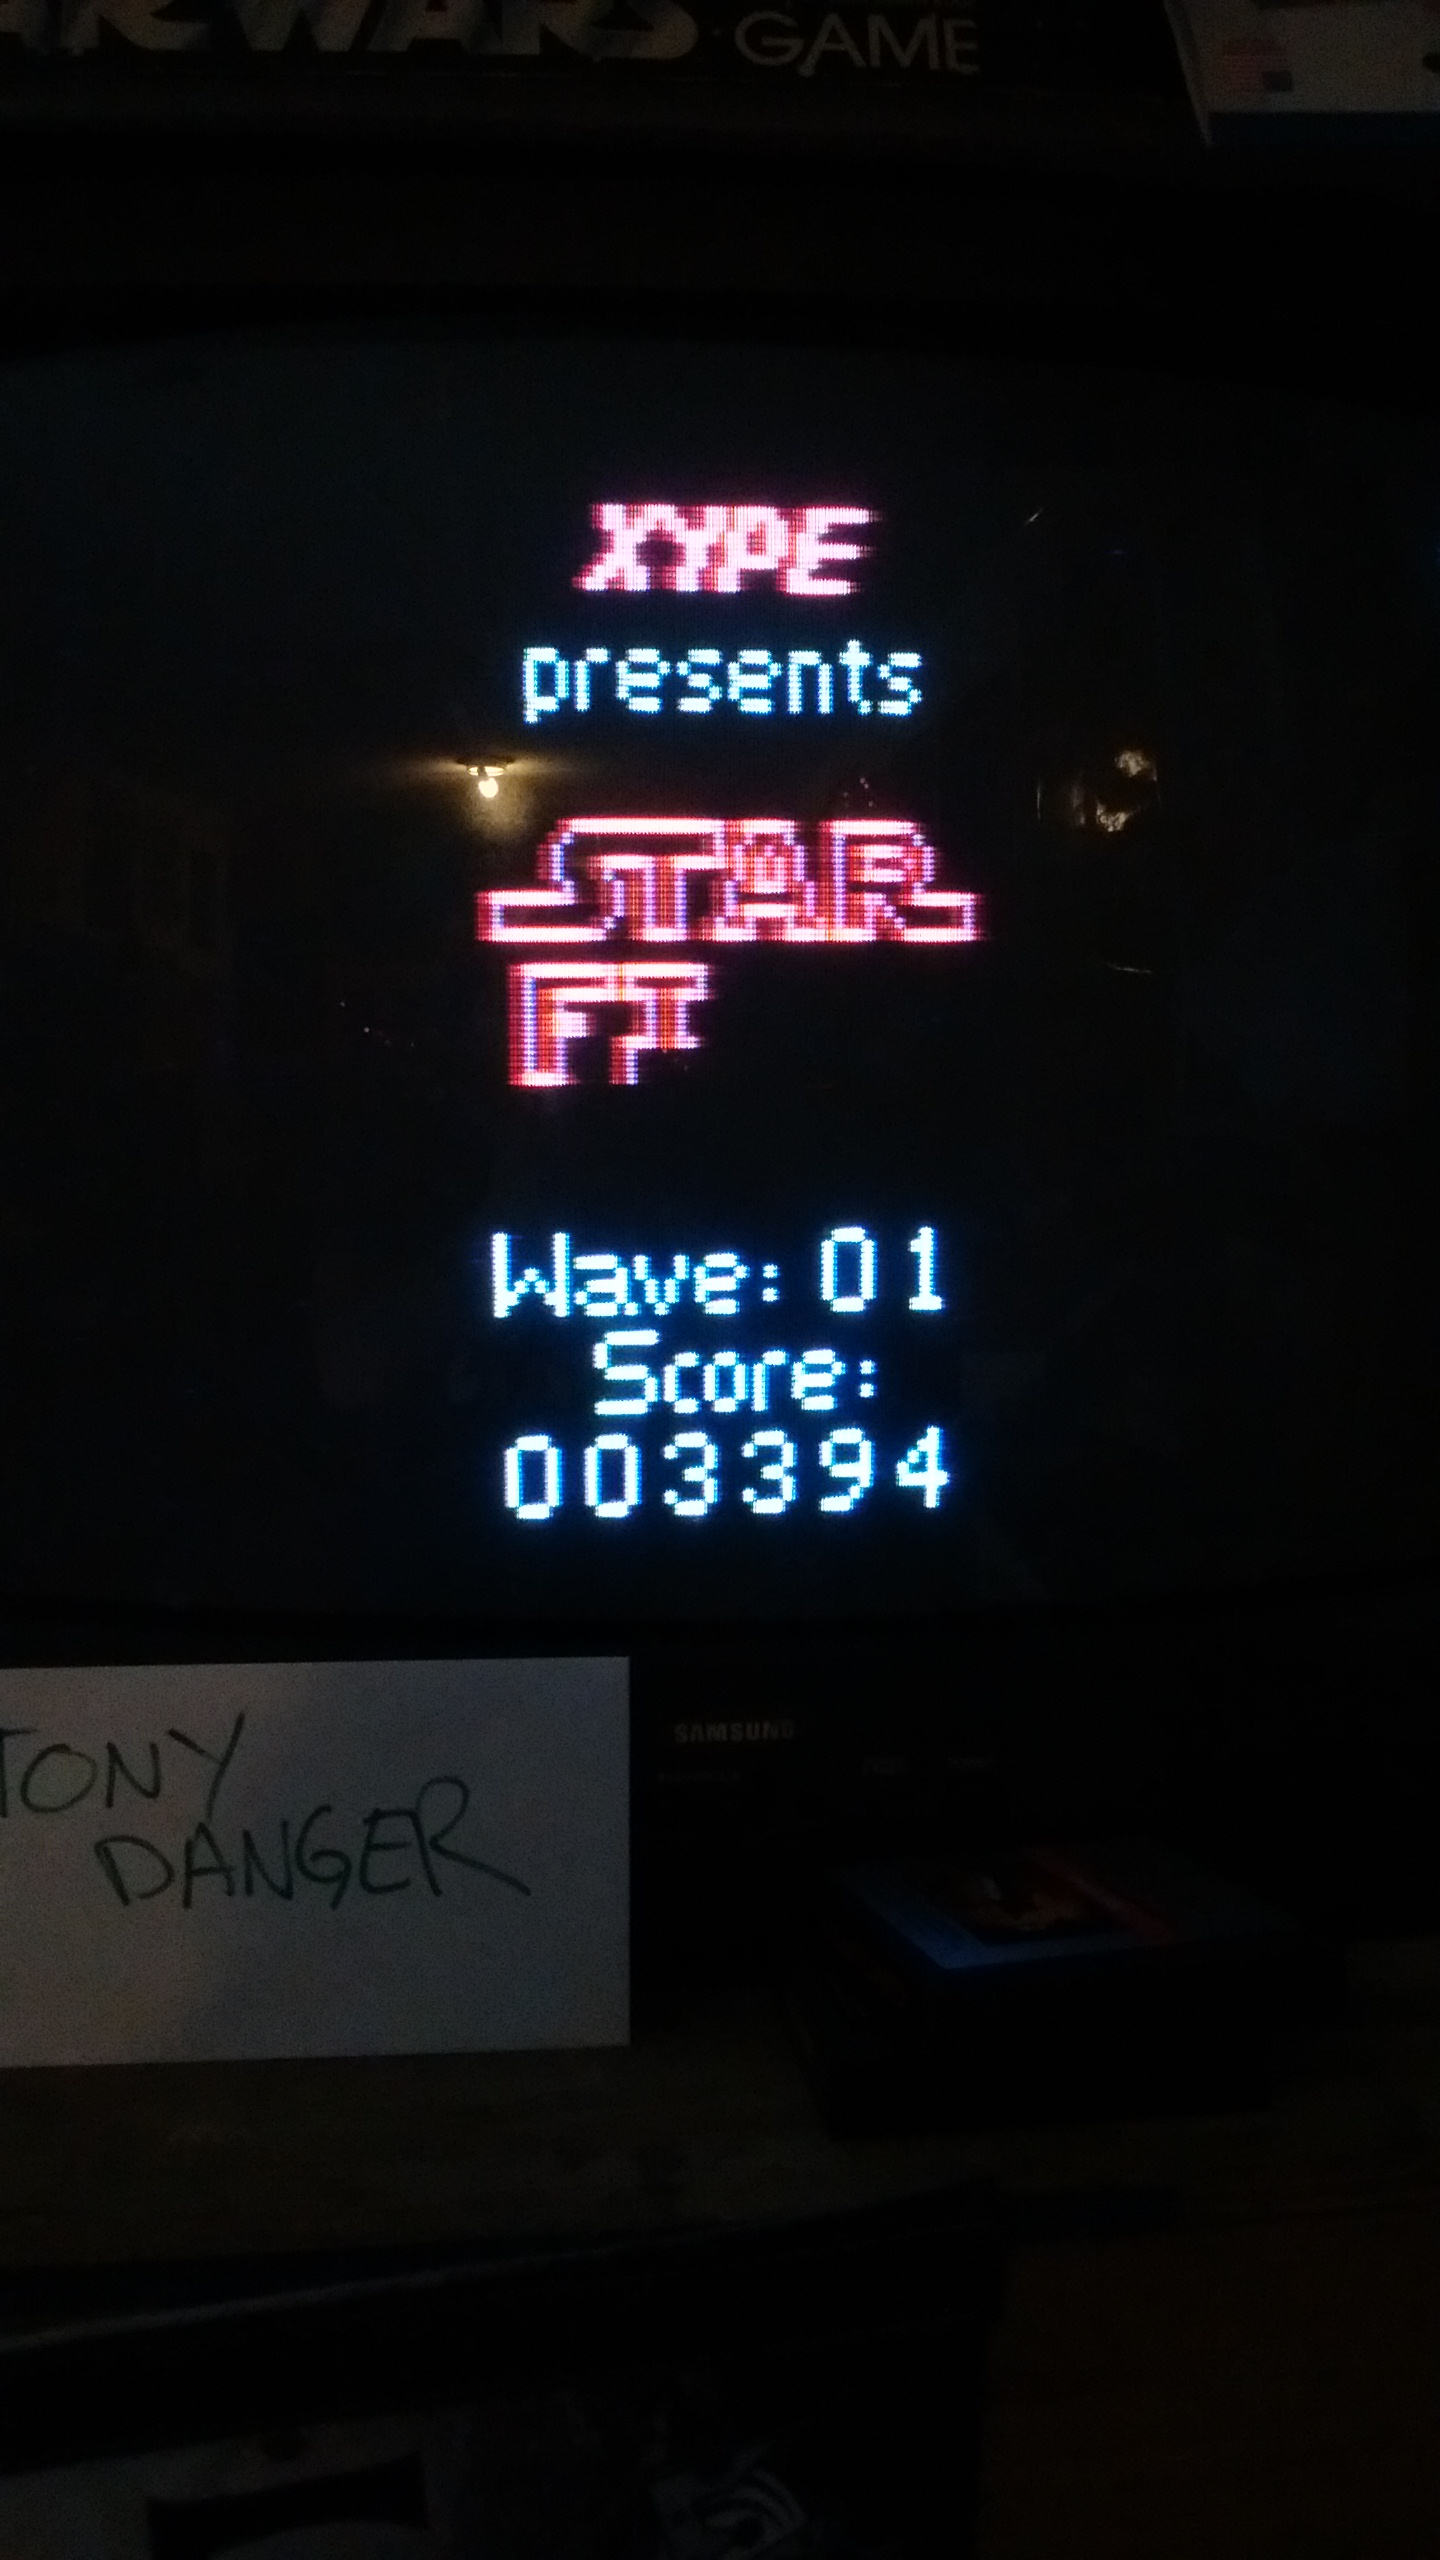 TonyDanger: Star Fire (Atari 2600 Expert/A) 3,394 points on 2016-11-13 17:14:48